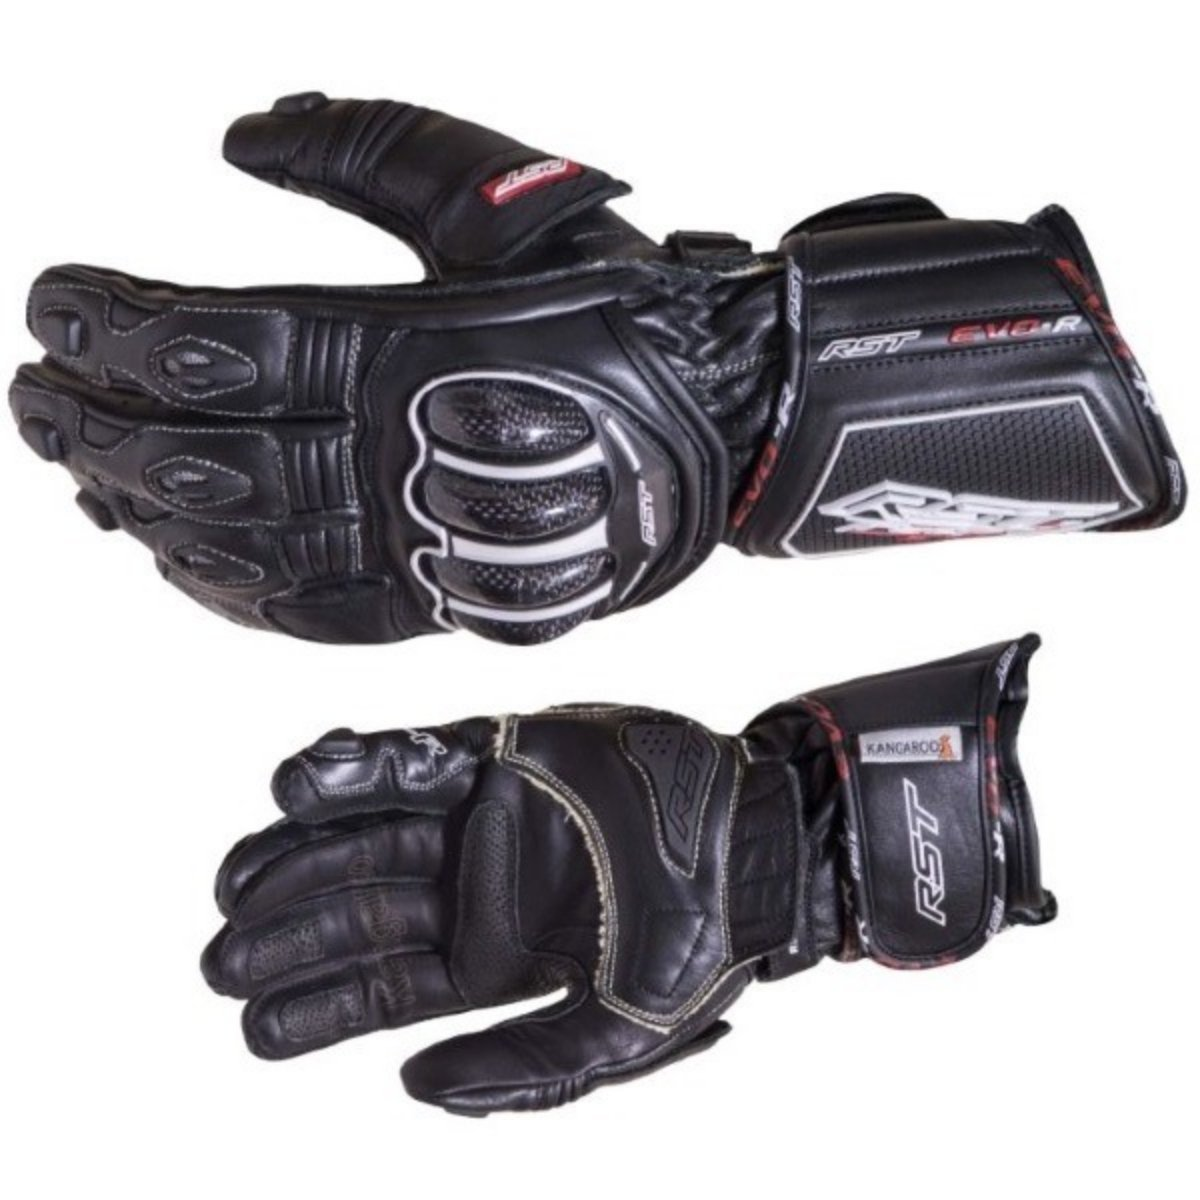 RST Tractech Evo R CE Black Motorcycle Gloves